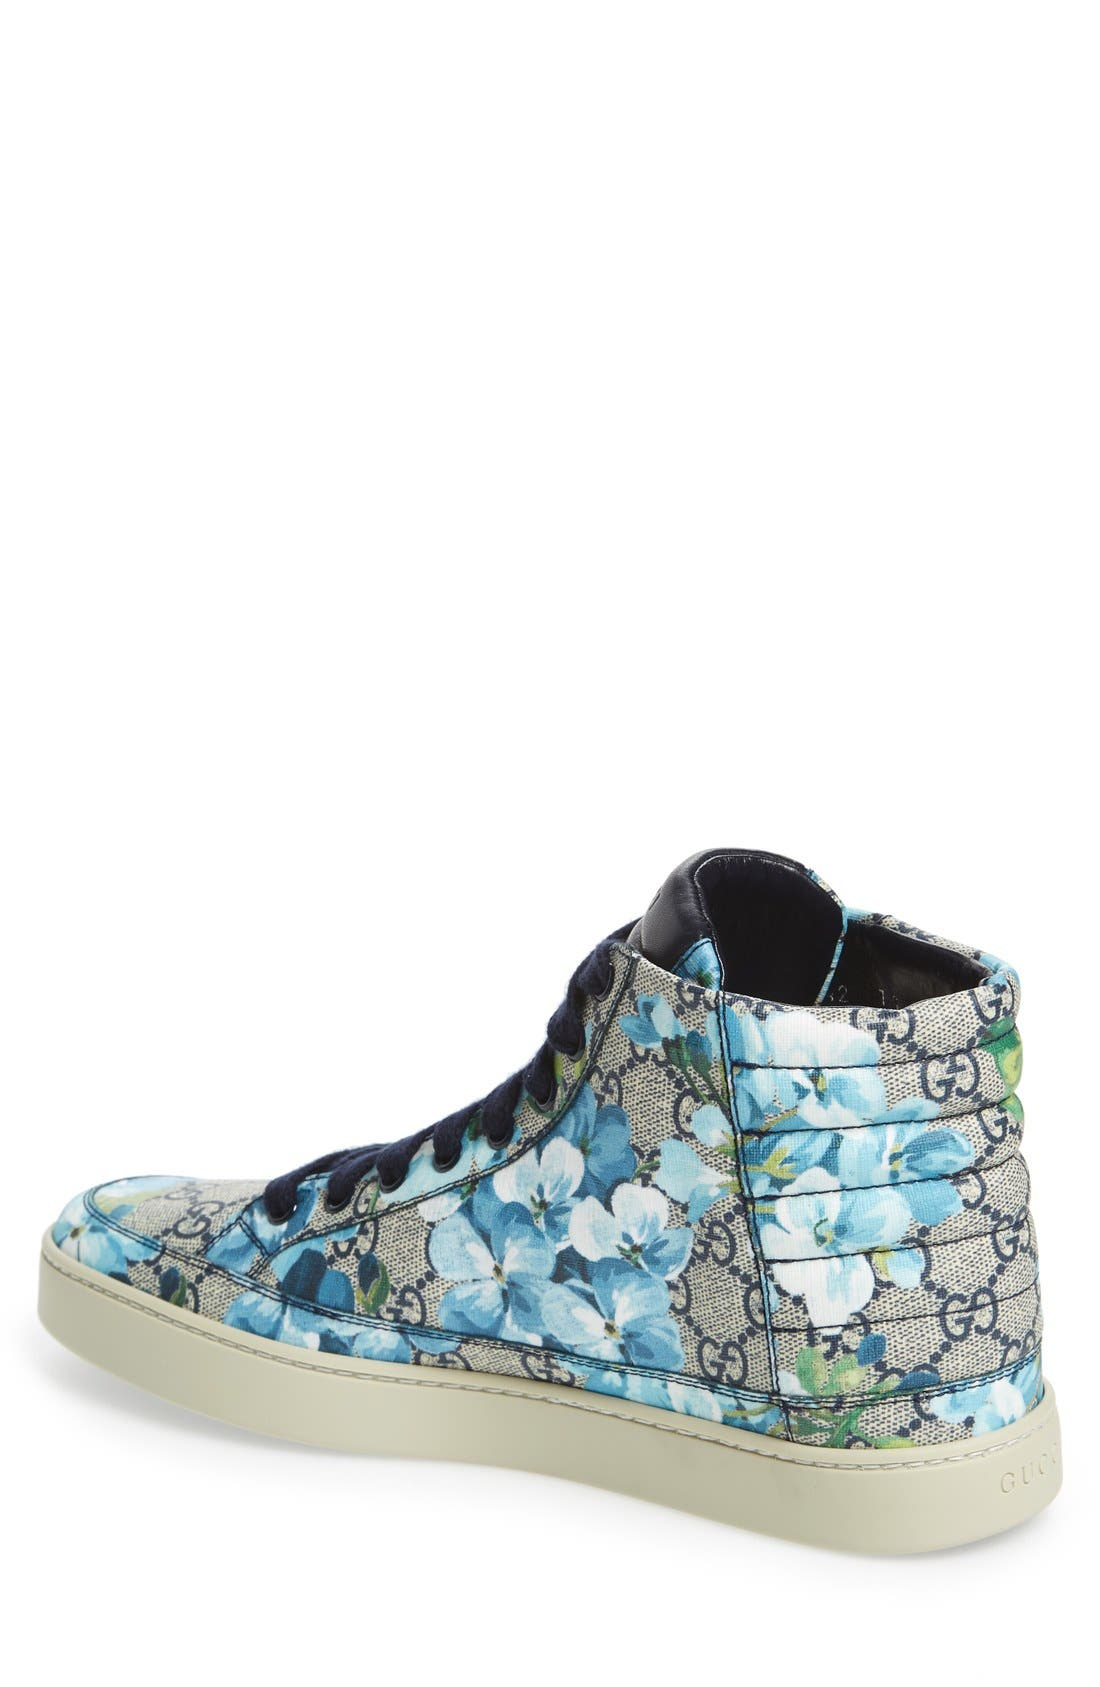 'Common' High Top Sneaker,                             Alternate thumbnail 2, color,                             Blue/ Beige Fabric/ Leather